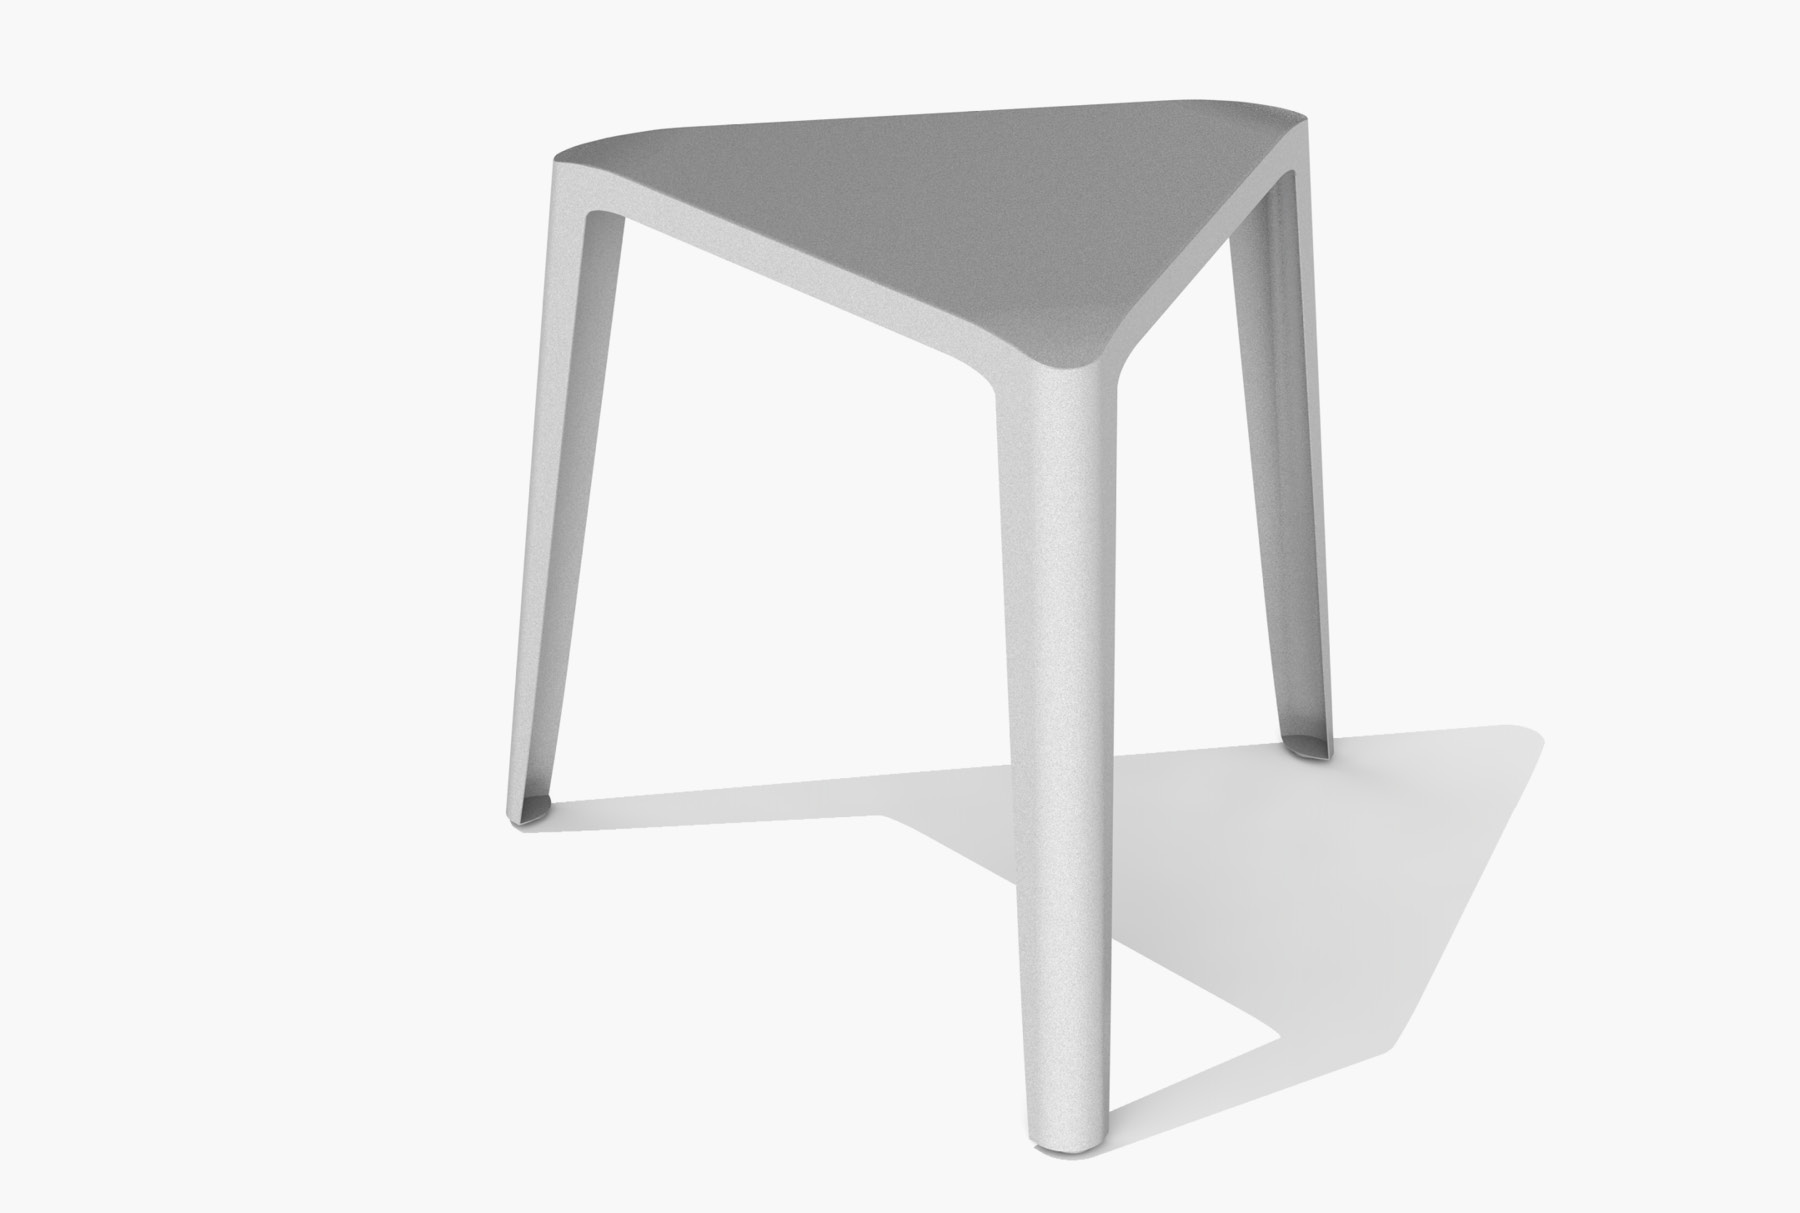 Arktura Clic Low Stool in Aviator Gray